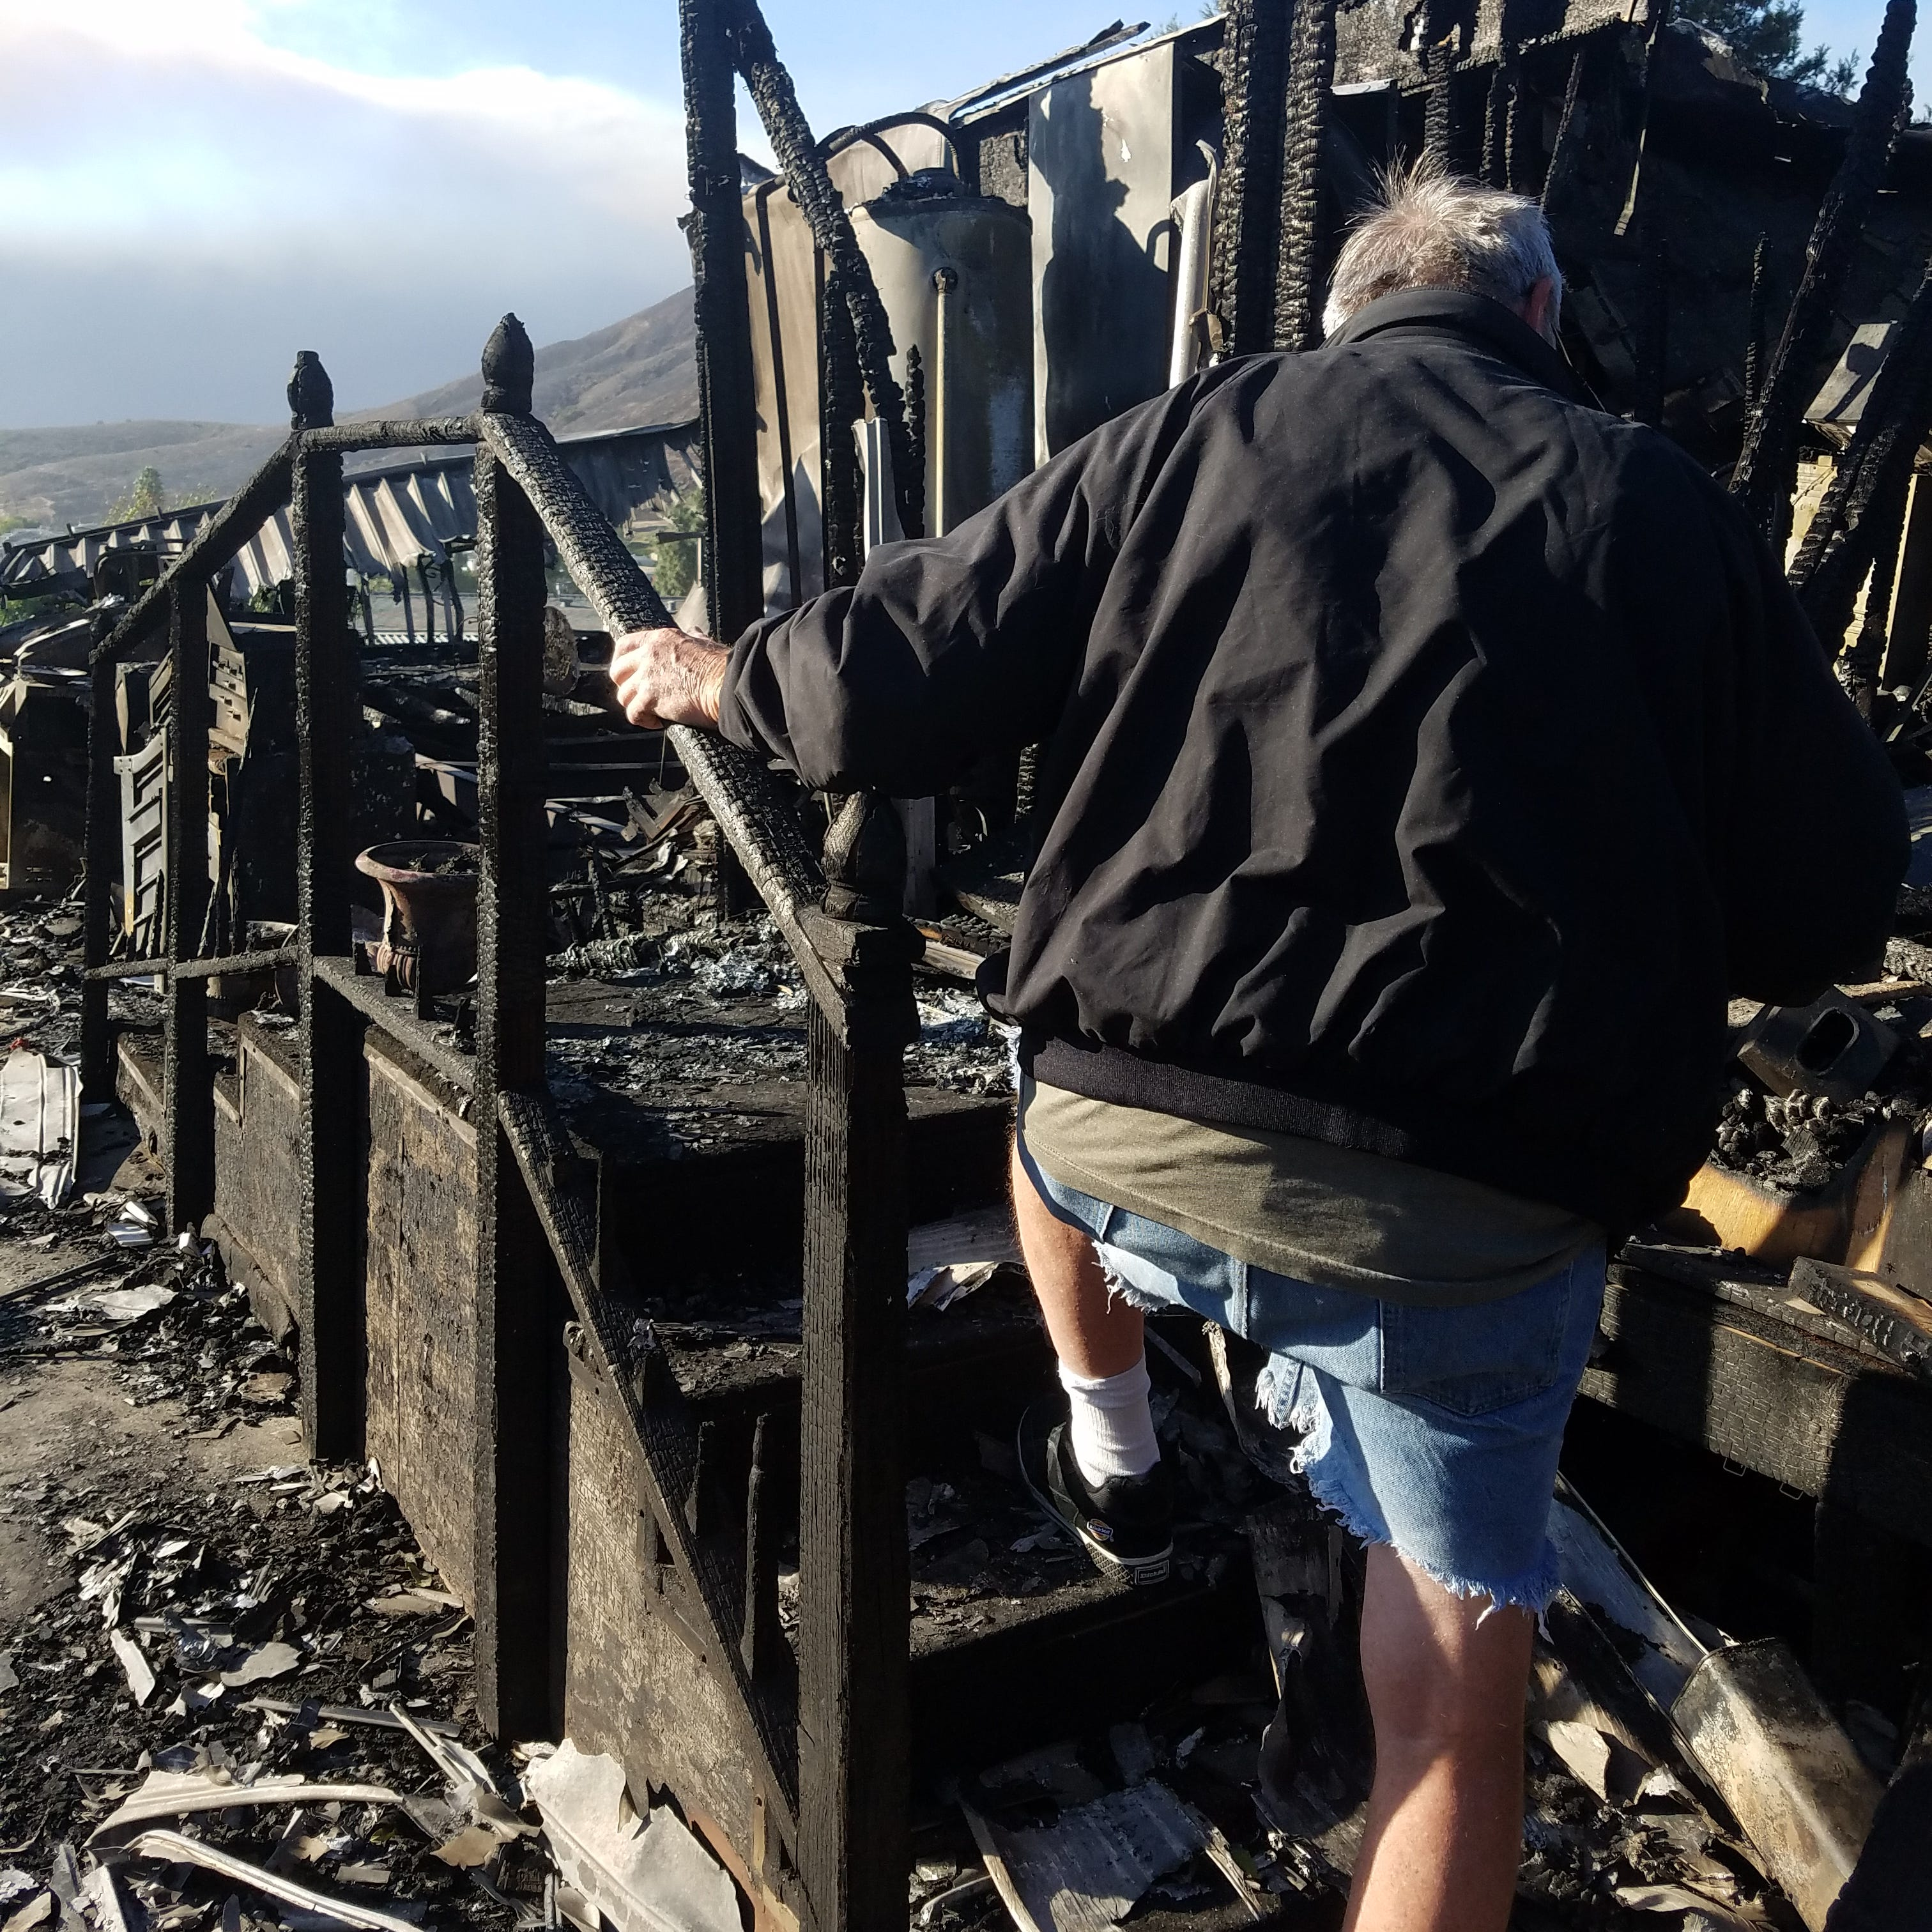 On 50th wedding anniversary, couple learns their home was destroyed in Hill Fire